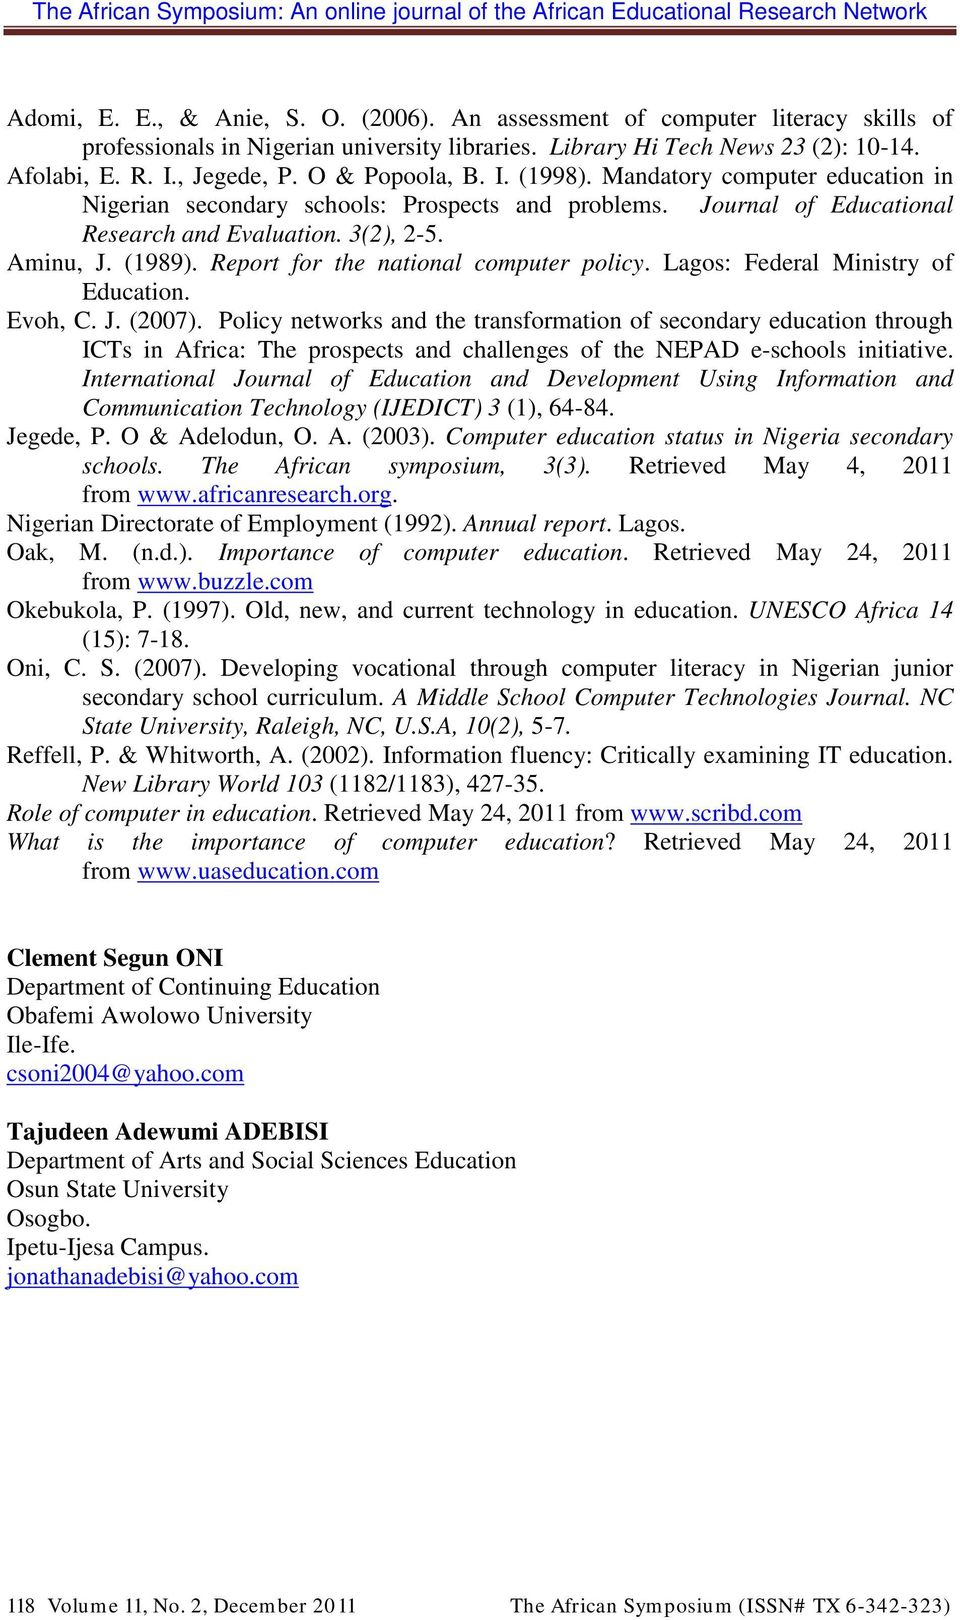 Report for the national computer policy. Lagos: Federal Ministry of Education. Evoh, C. J. (2007).